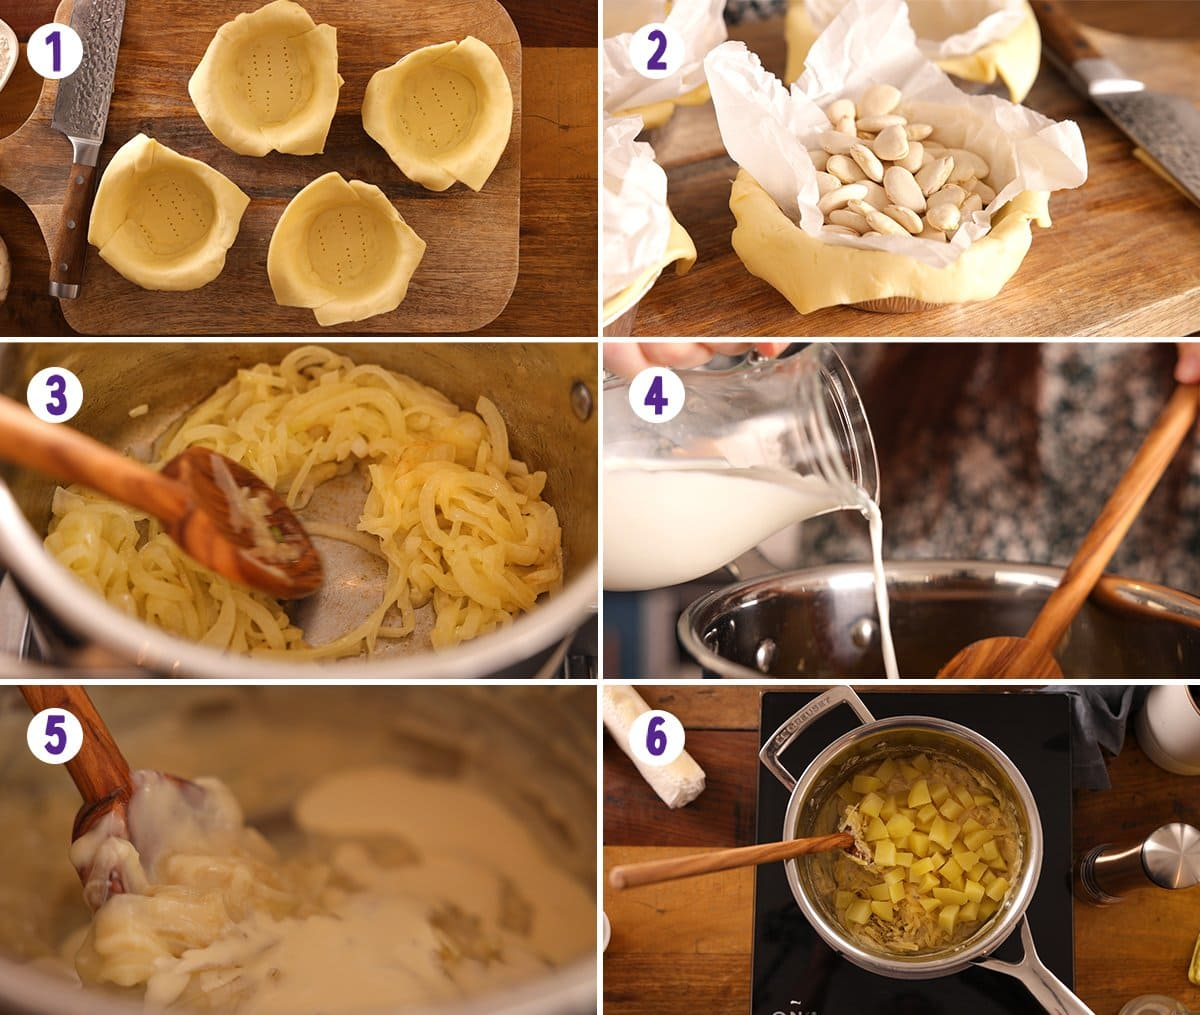 6 image collage showing initial process steps for making individual cheese and onion pies.